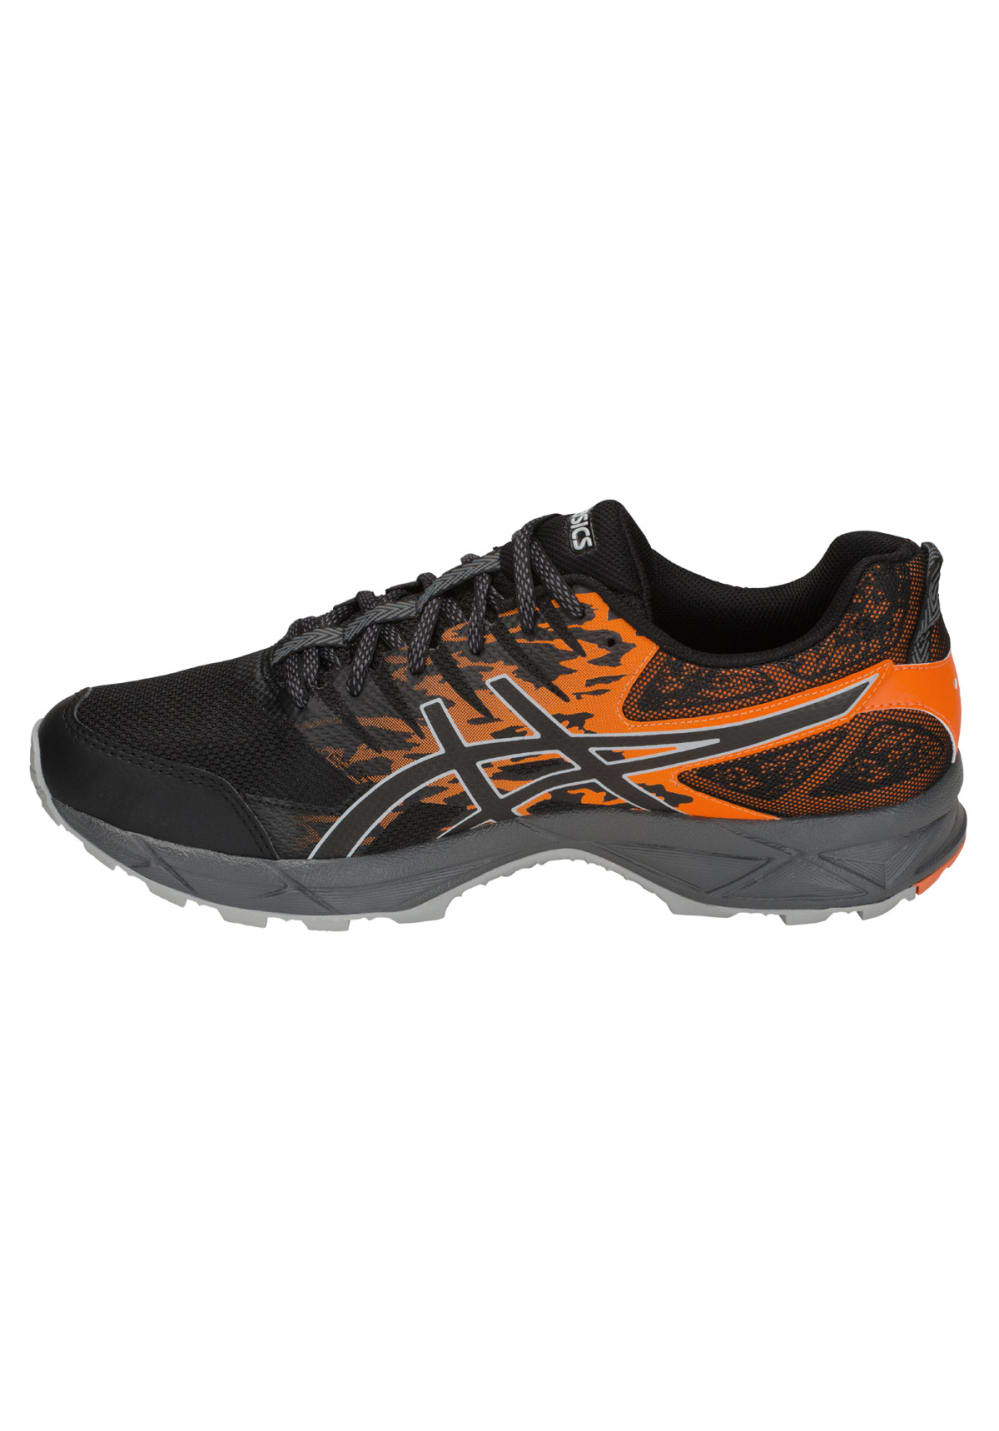 48a1946c4bc7 ASICS GEL-Sonoma 3 - Running shoes for Men - Black | 21RUN